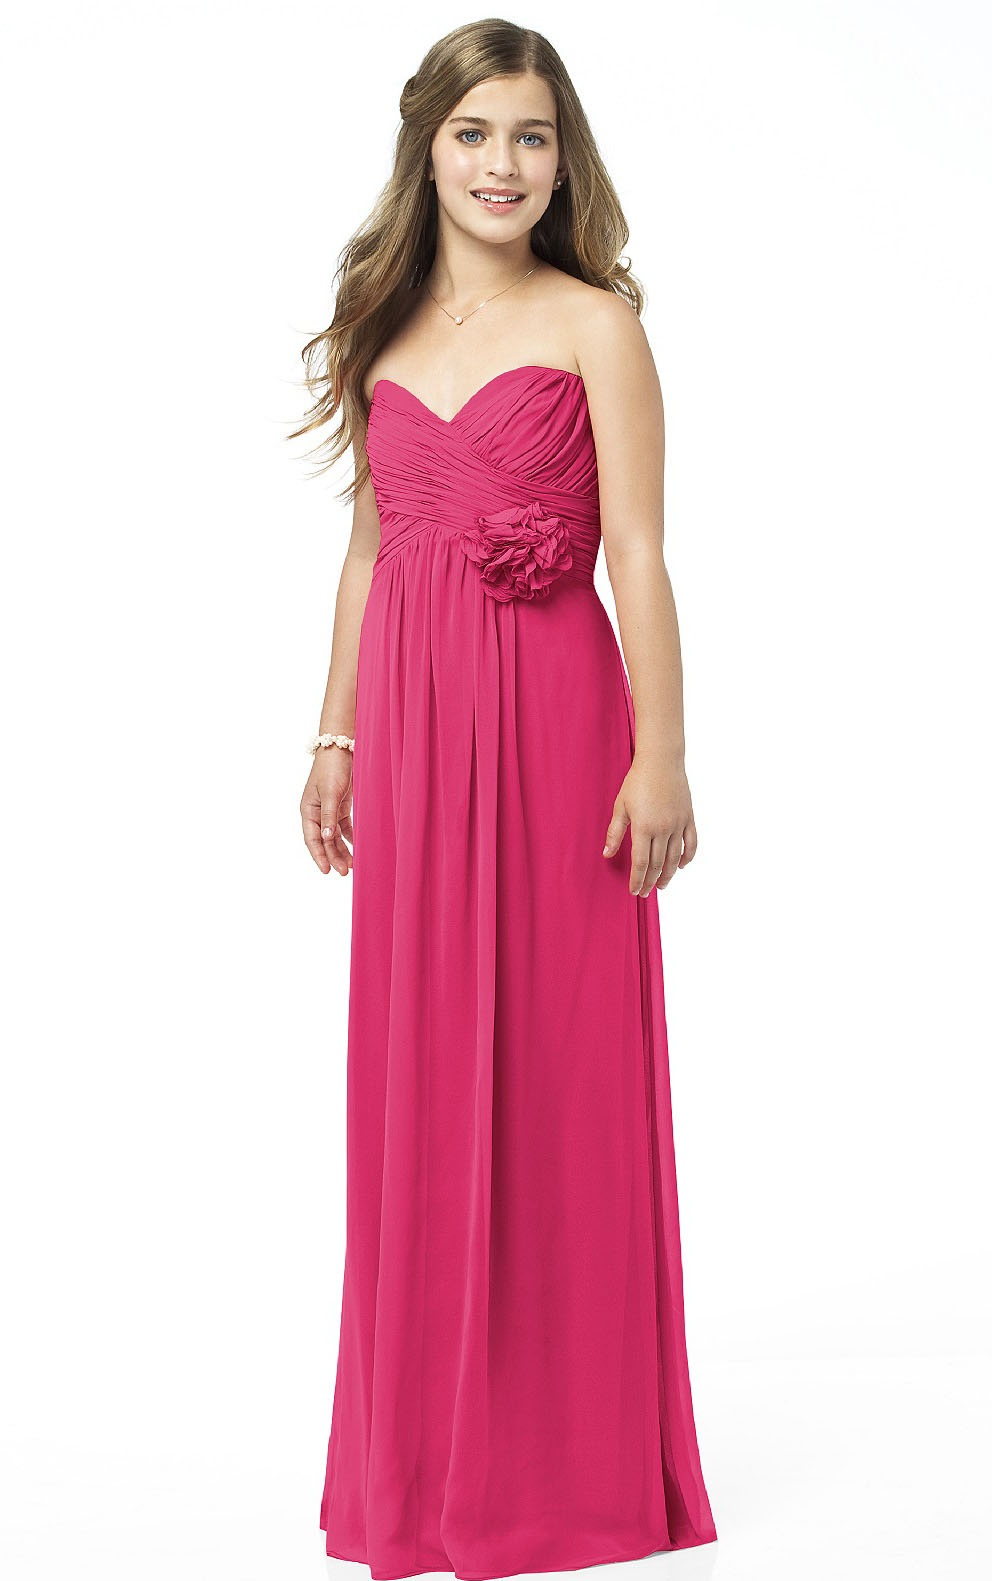 Empire A-line Floor-length Sleeveless Chiffon Bridesmaid Dresses